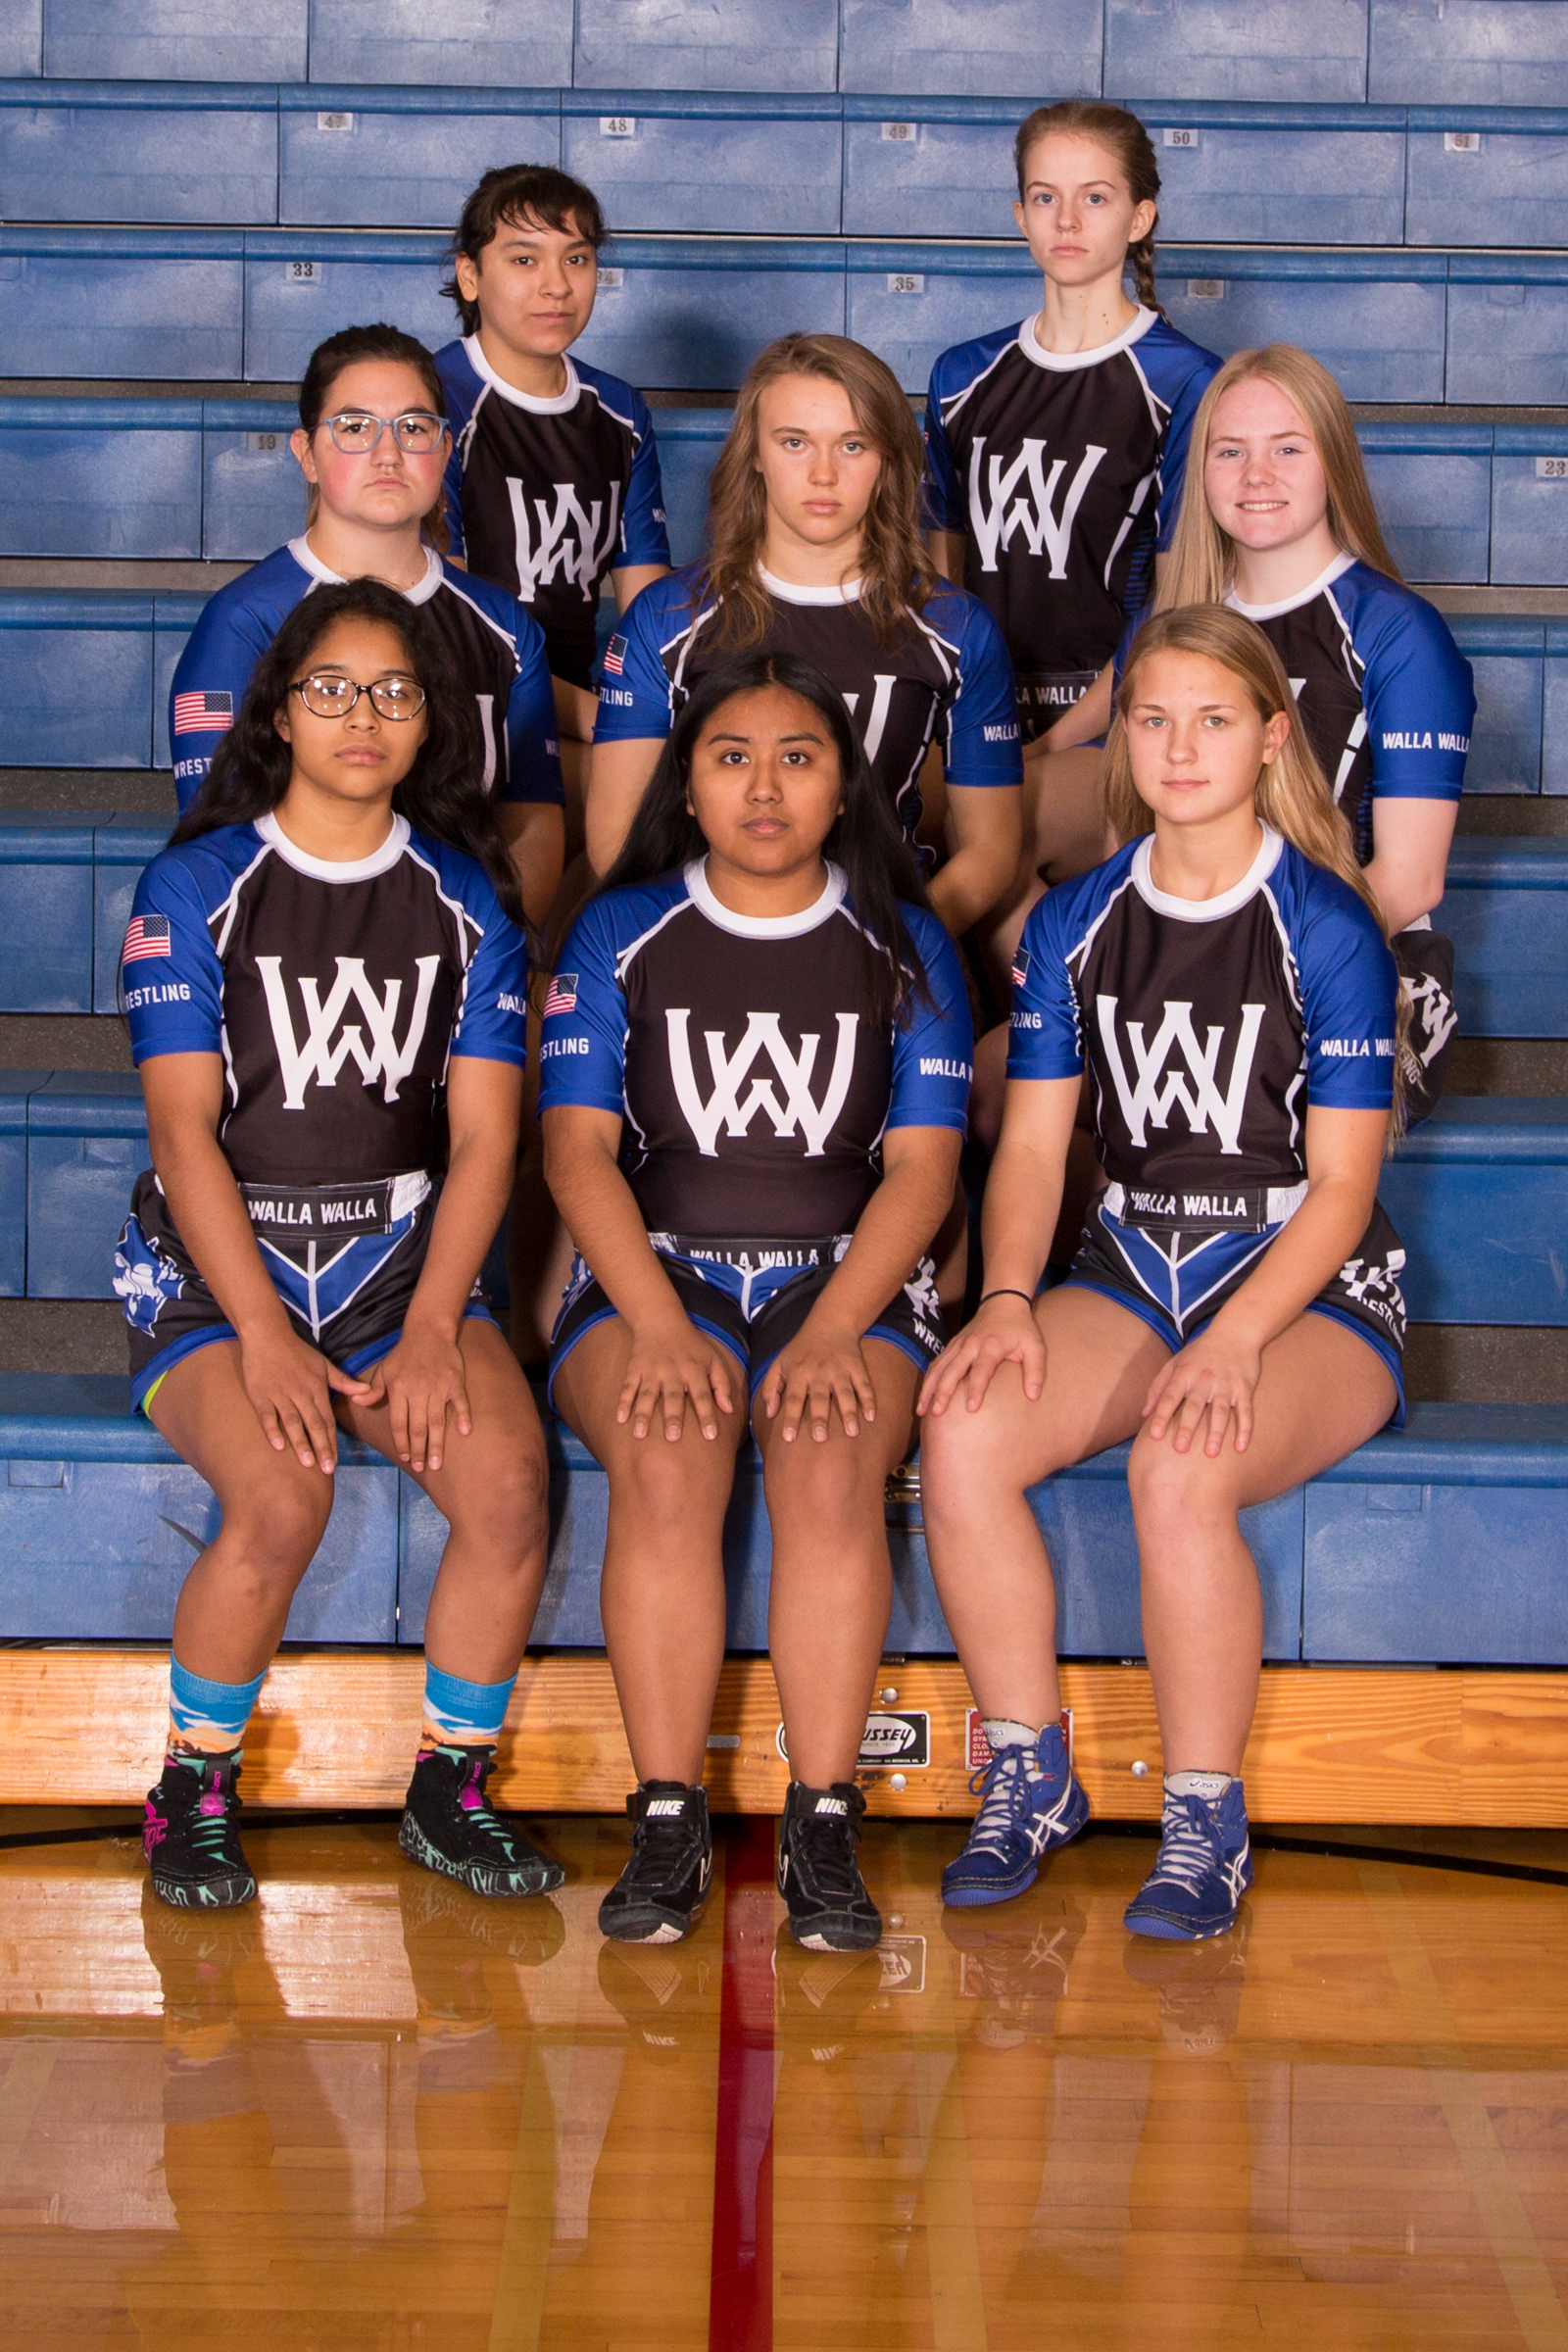 images/athletics/Wrestling/2018-2019_Girls_Wrestling_Team.jpg